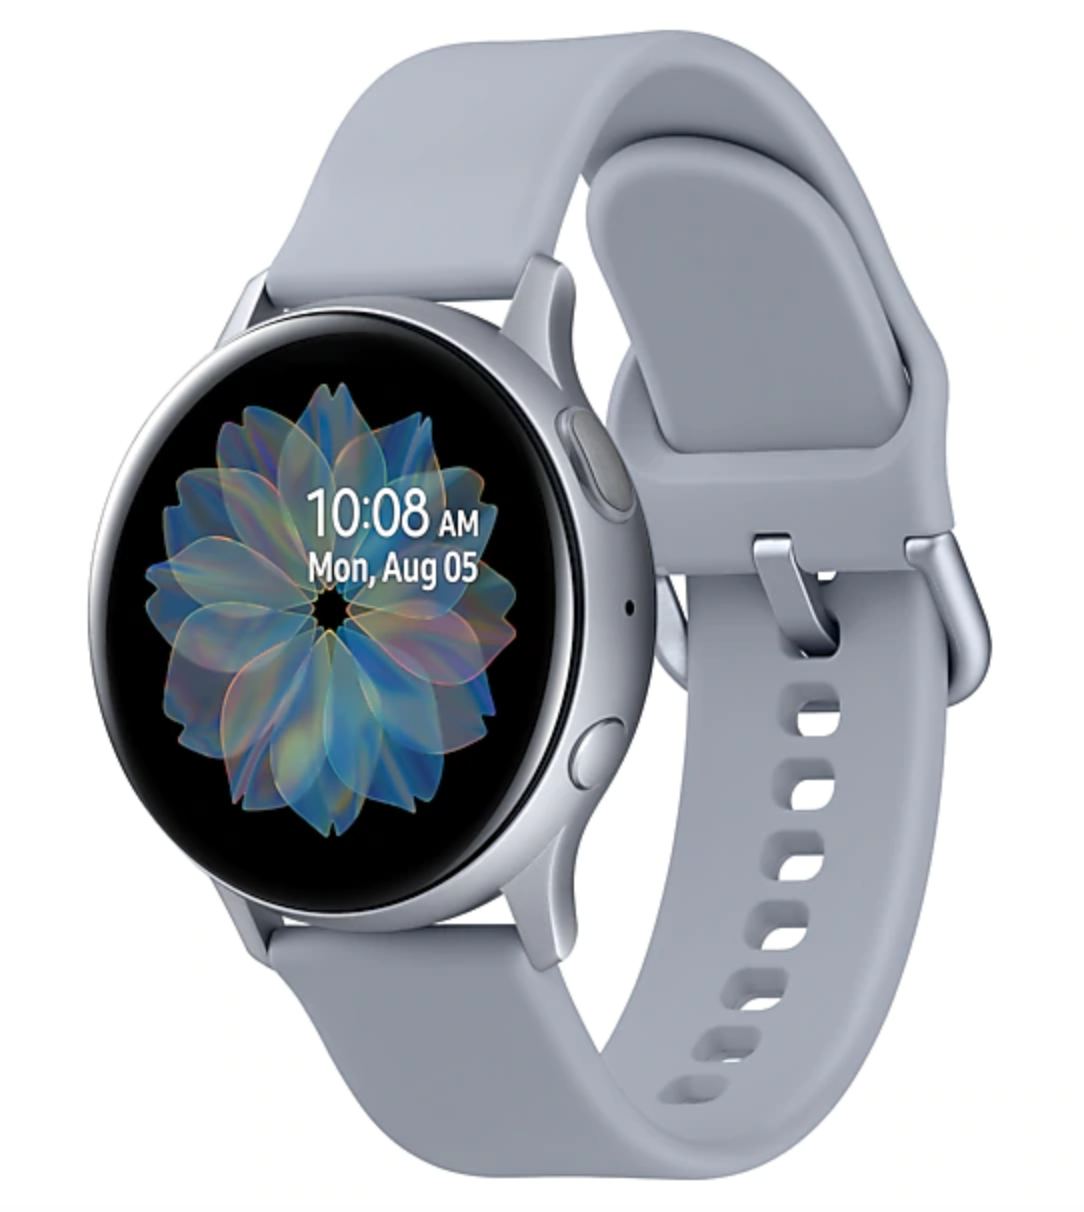 Часы Samsung Galaxy Watch Active2 алюминий 44 мм Cloud Silver (Арктика) RU/A